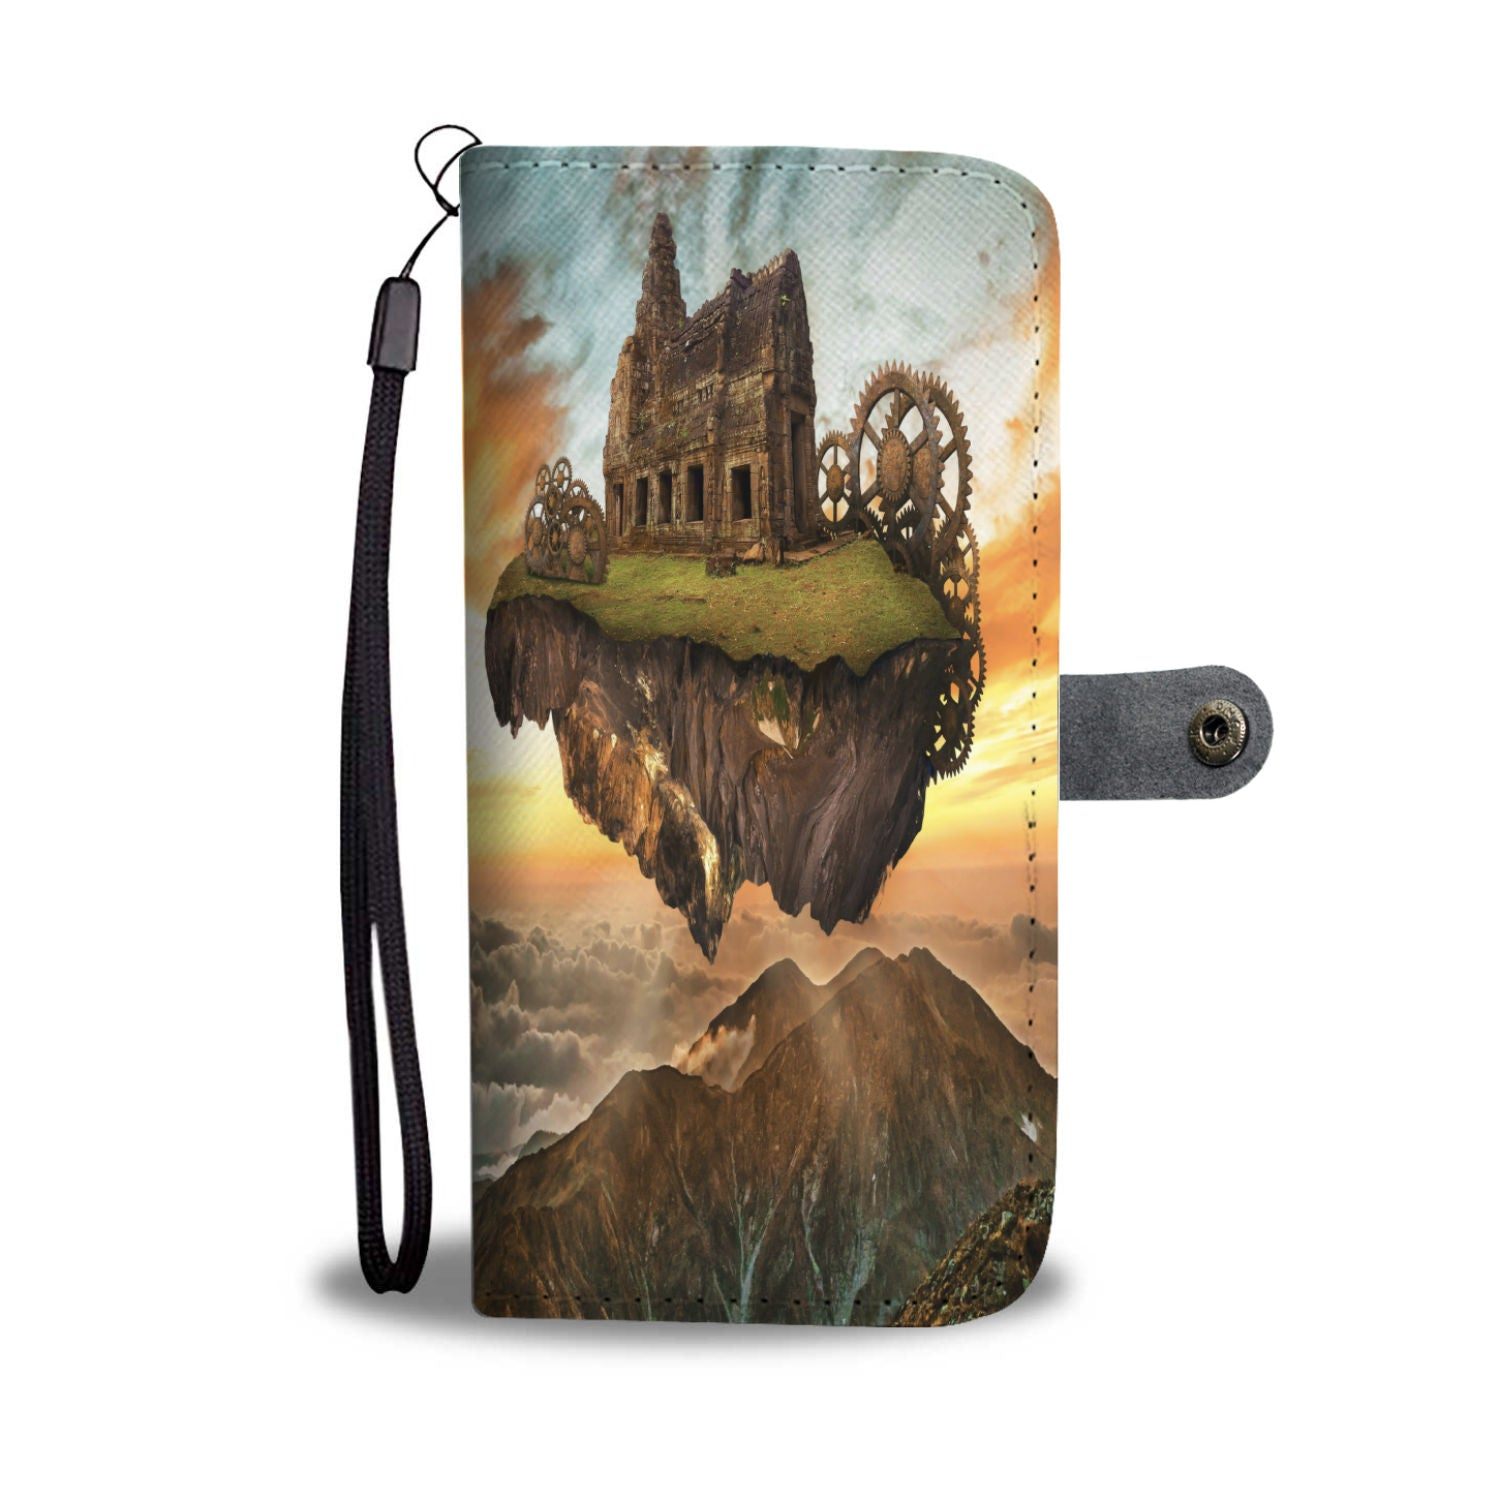 Steampunk House Design Phone Case - Available On Most Phones